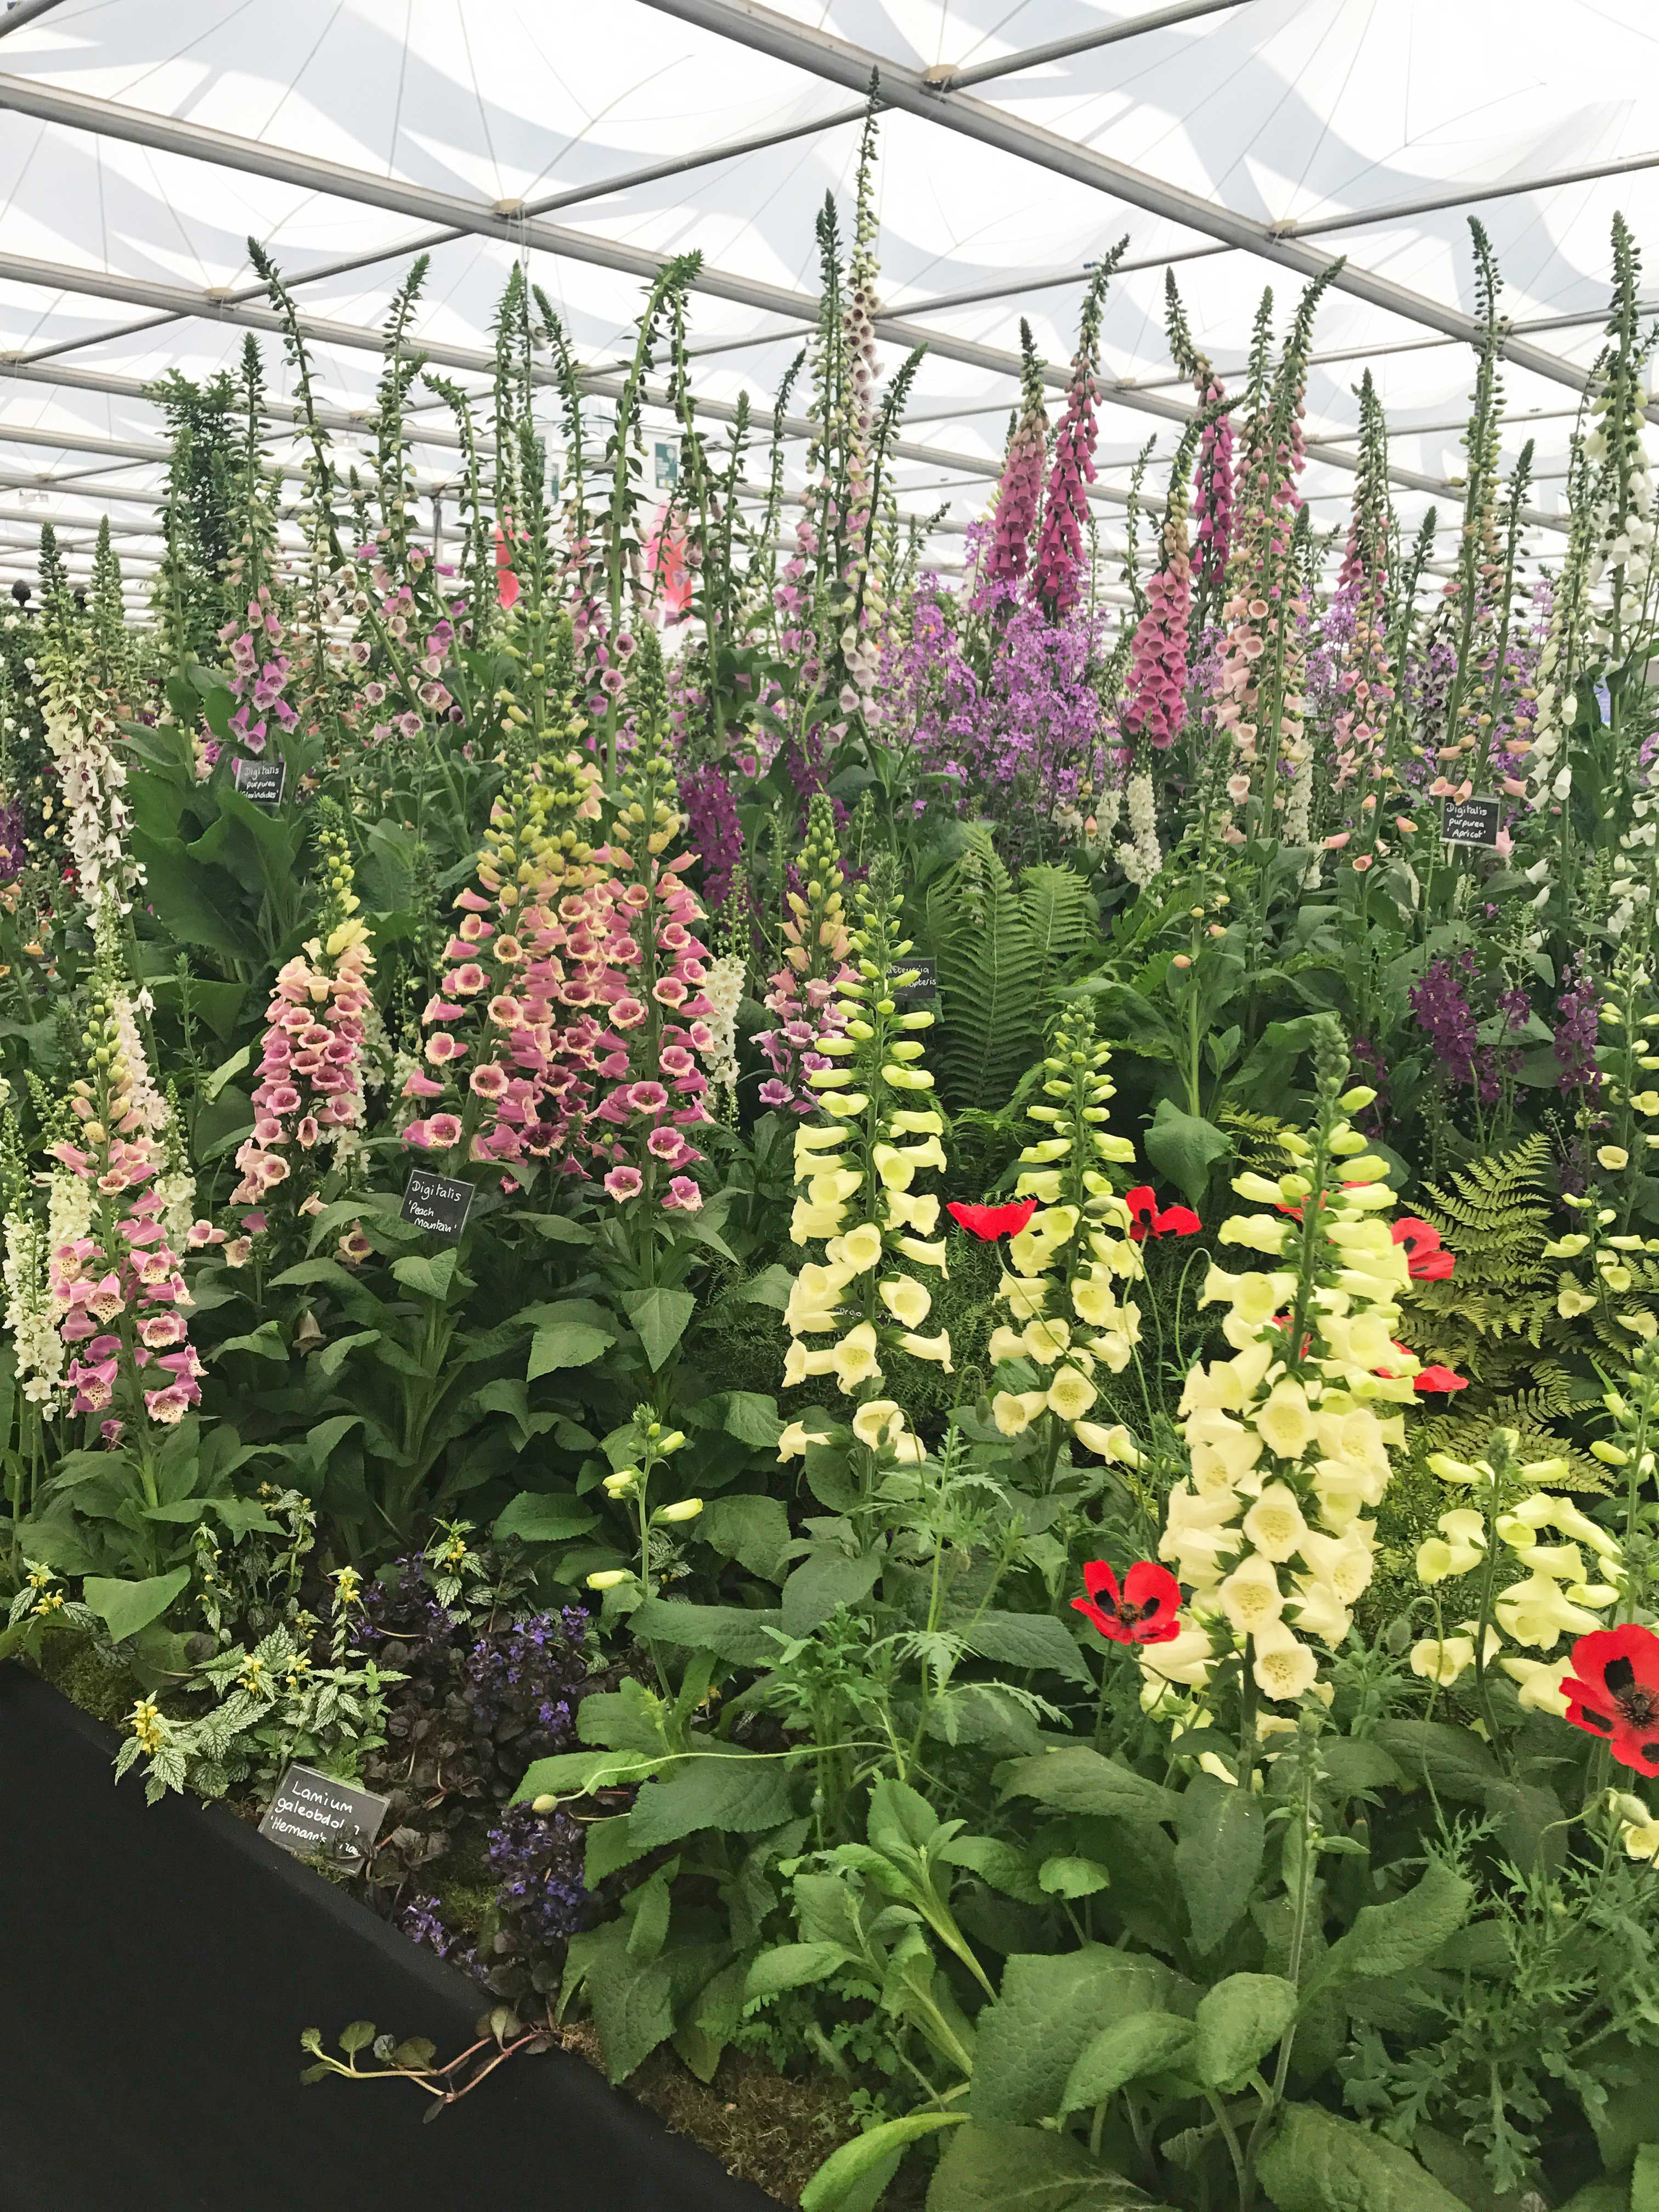 Chelsea Flower Show 2019 Highlights The Importance Of Sustainable